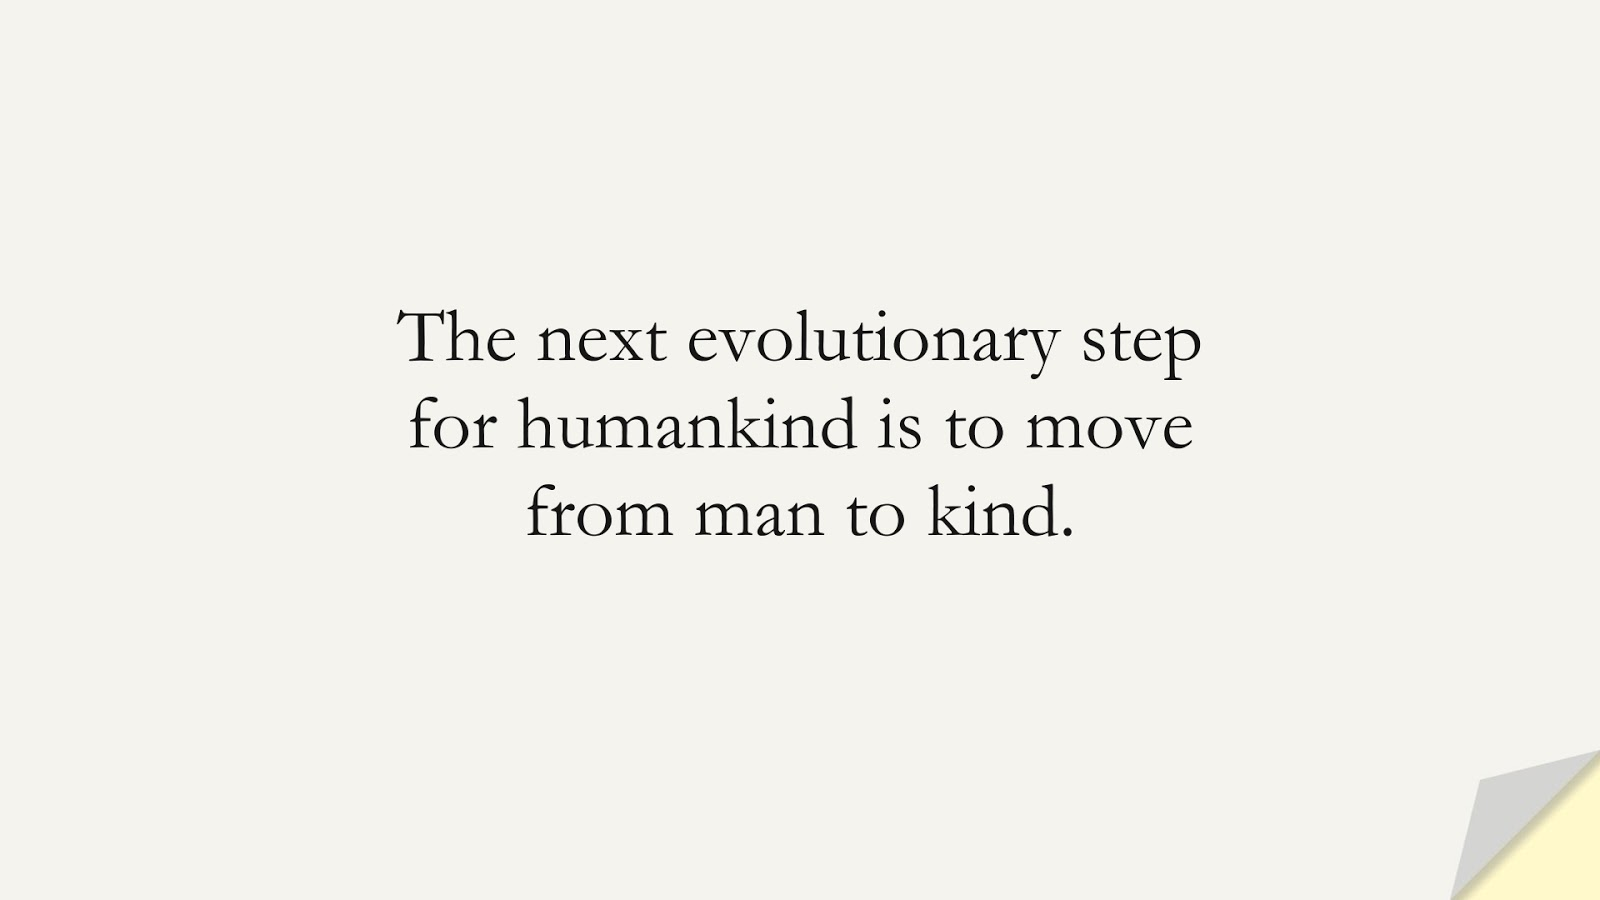 The next evolutionary step for humankind is to move from man to kind.FALSE